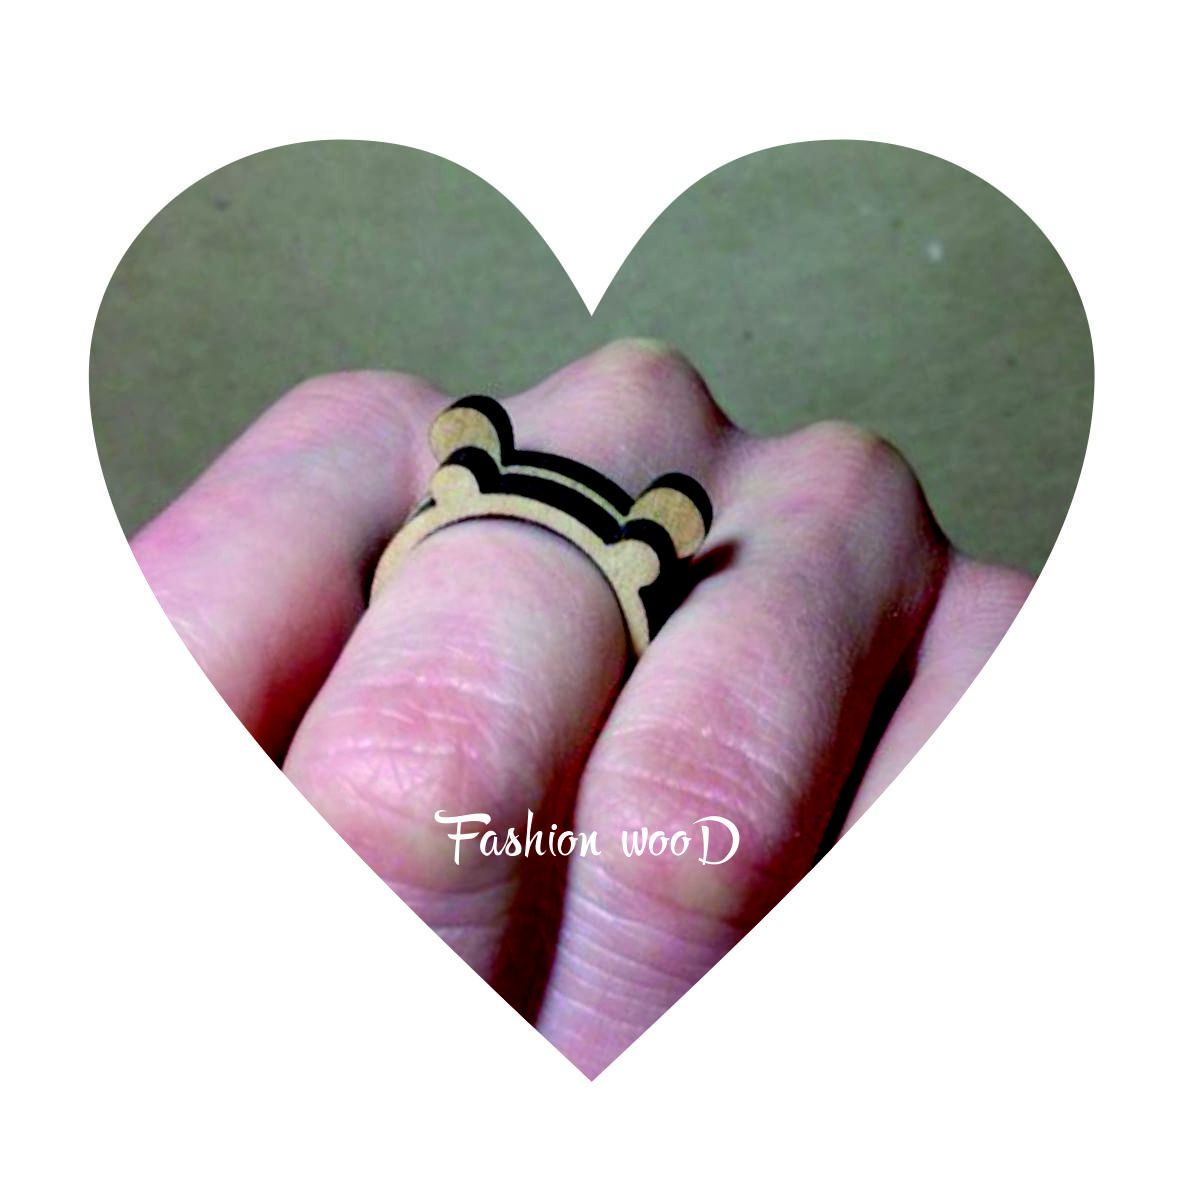 fashionwood wooden ring girt